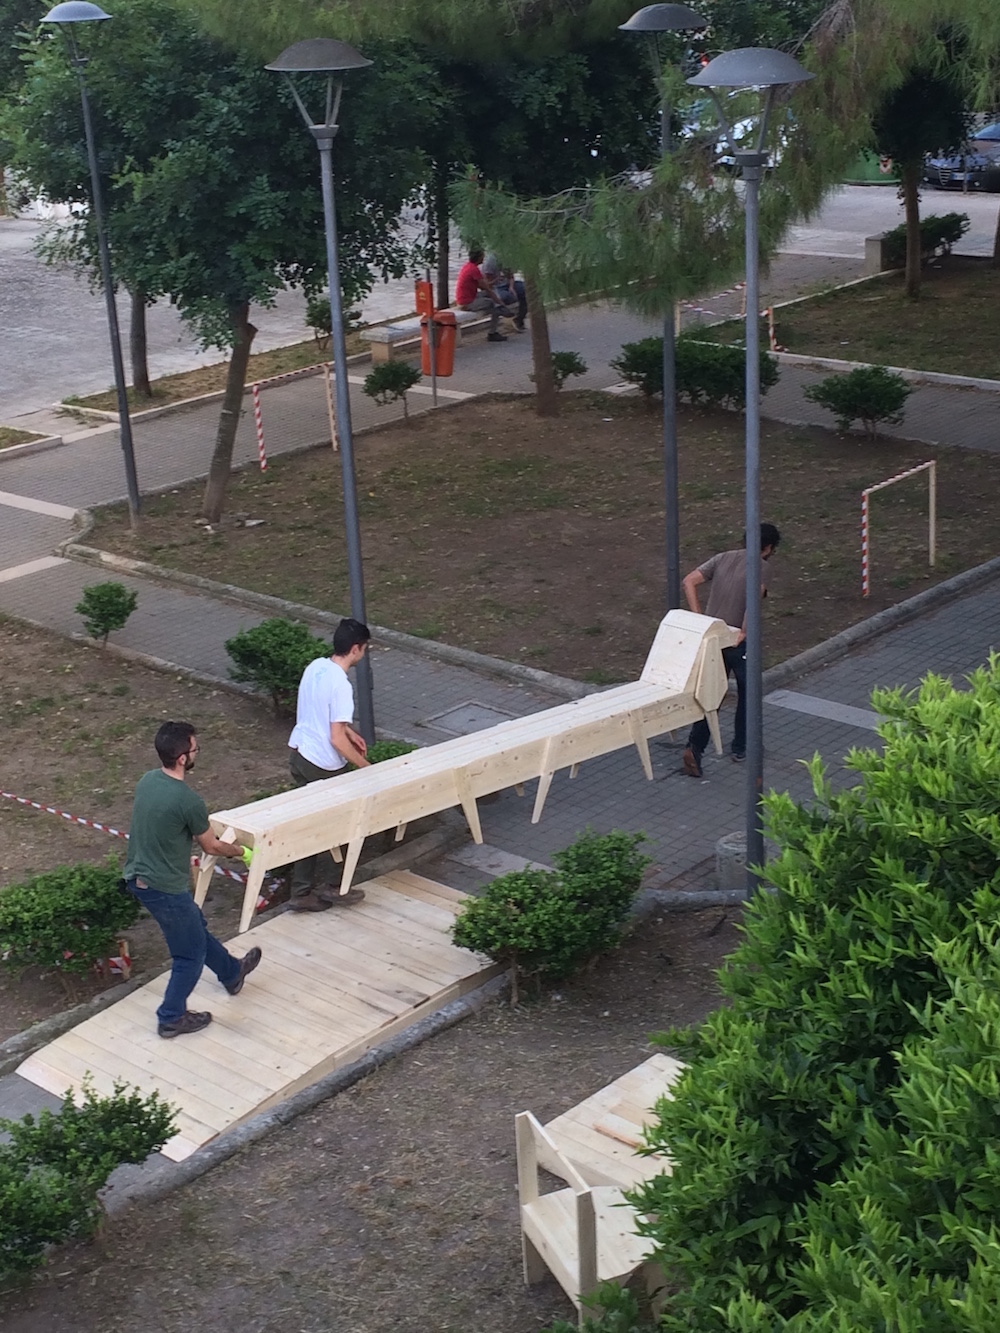 16 garden bench for the new dog run area - finding funny ways to approach dog owners to reflect on the ploblem of dog poops©Nayarí Castillo copy